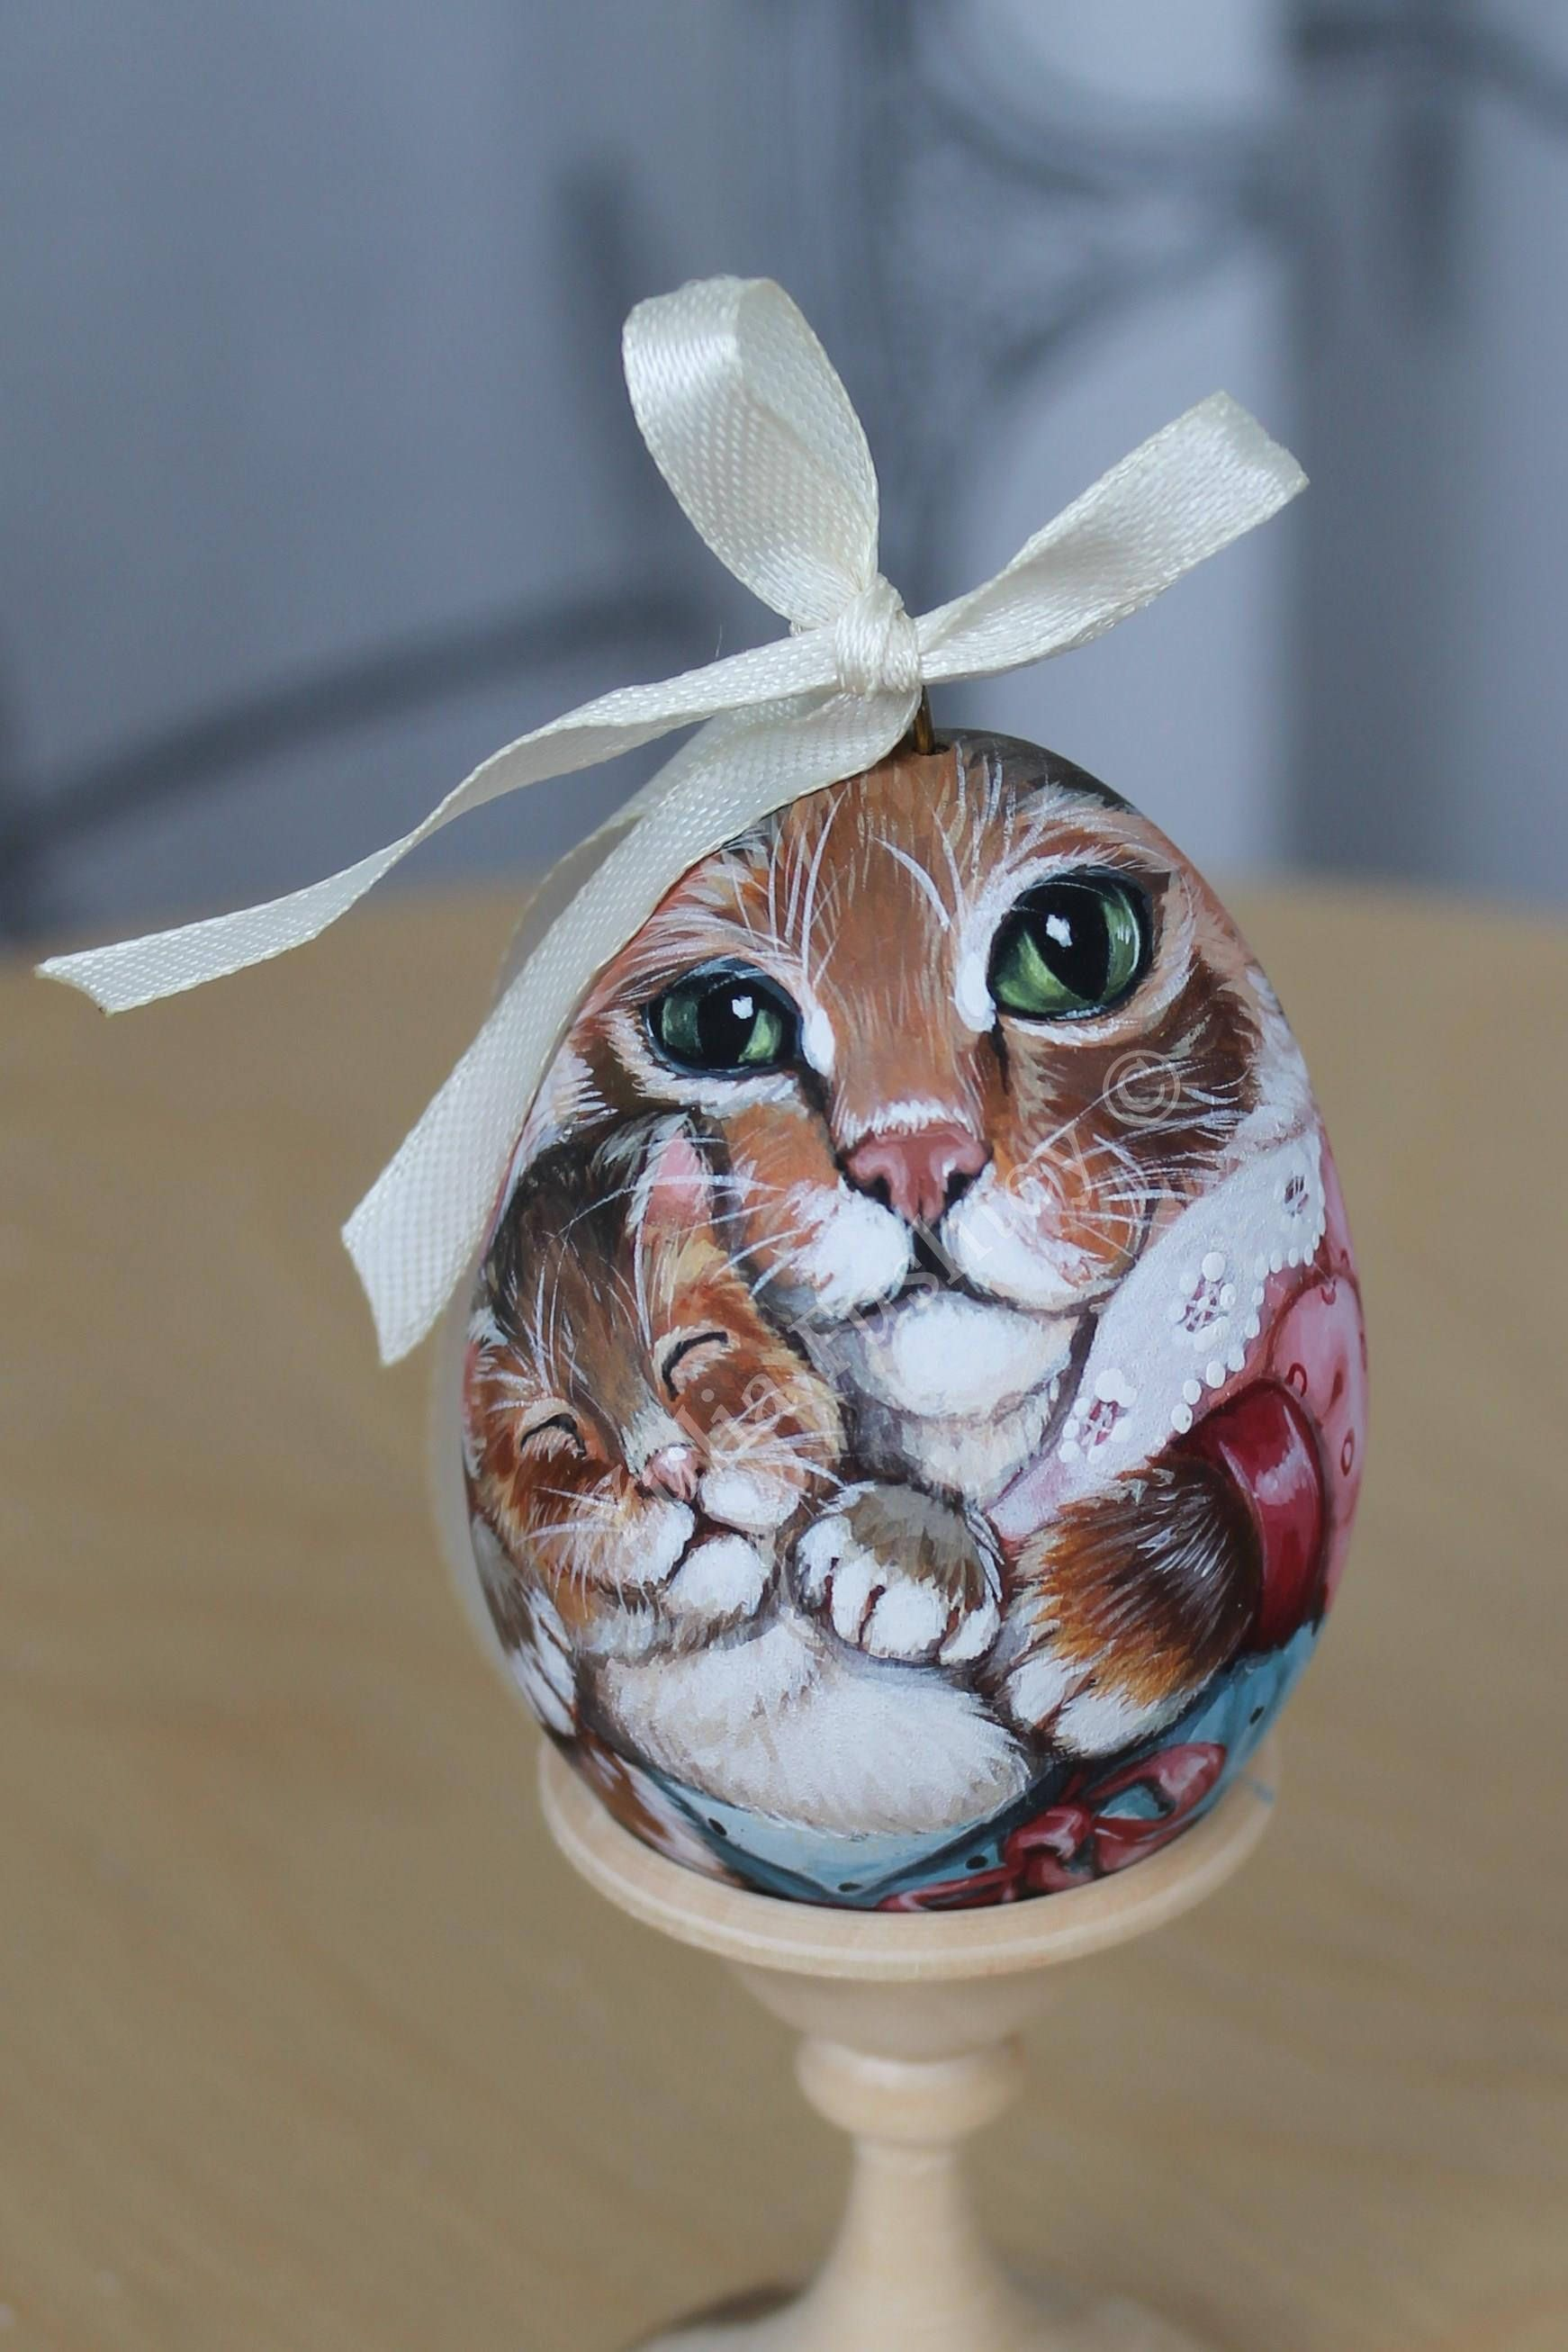 Souvenir, hand painted on wood. Cat with a kitten. Brings